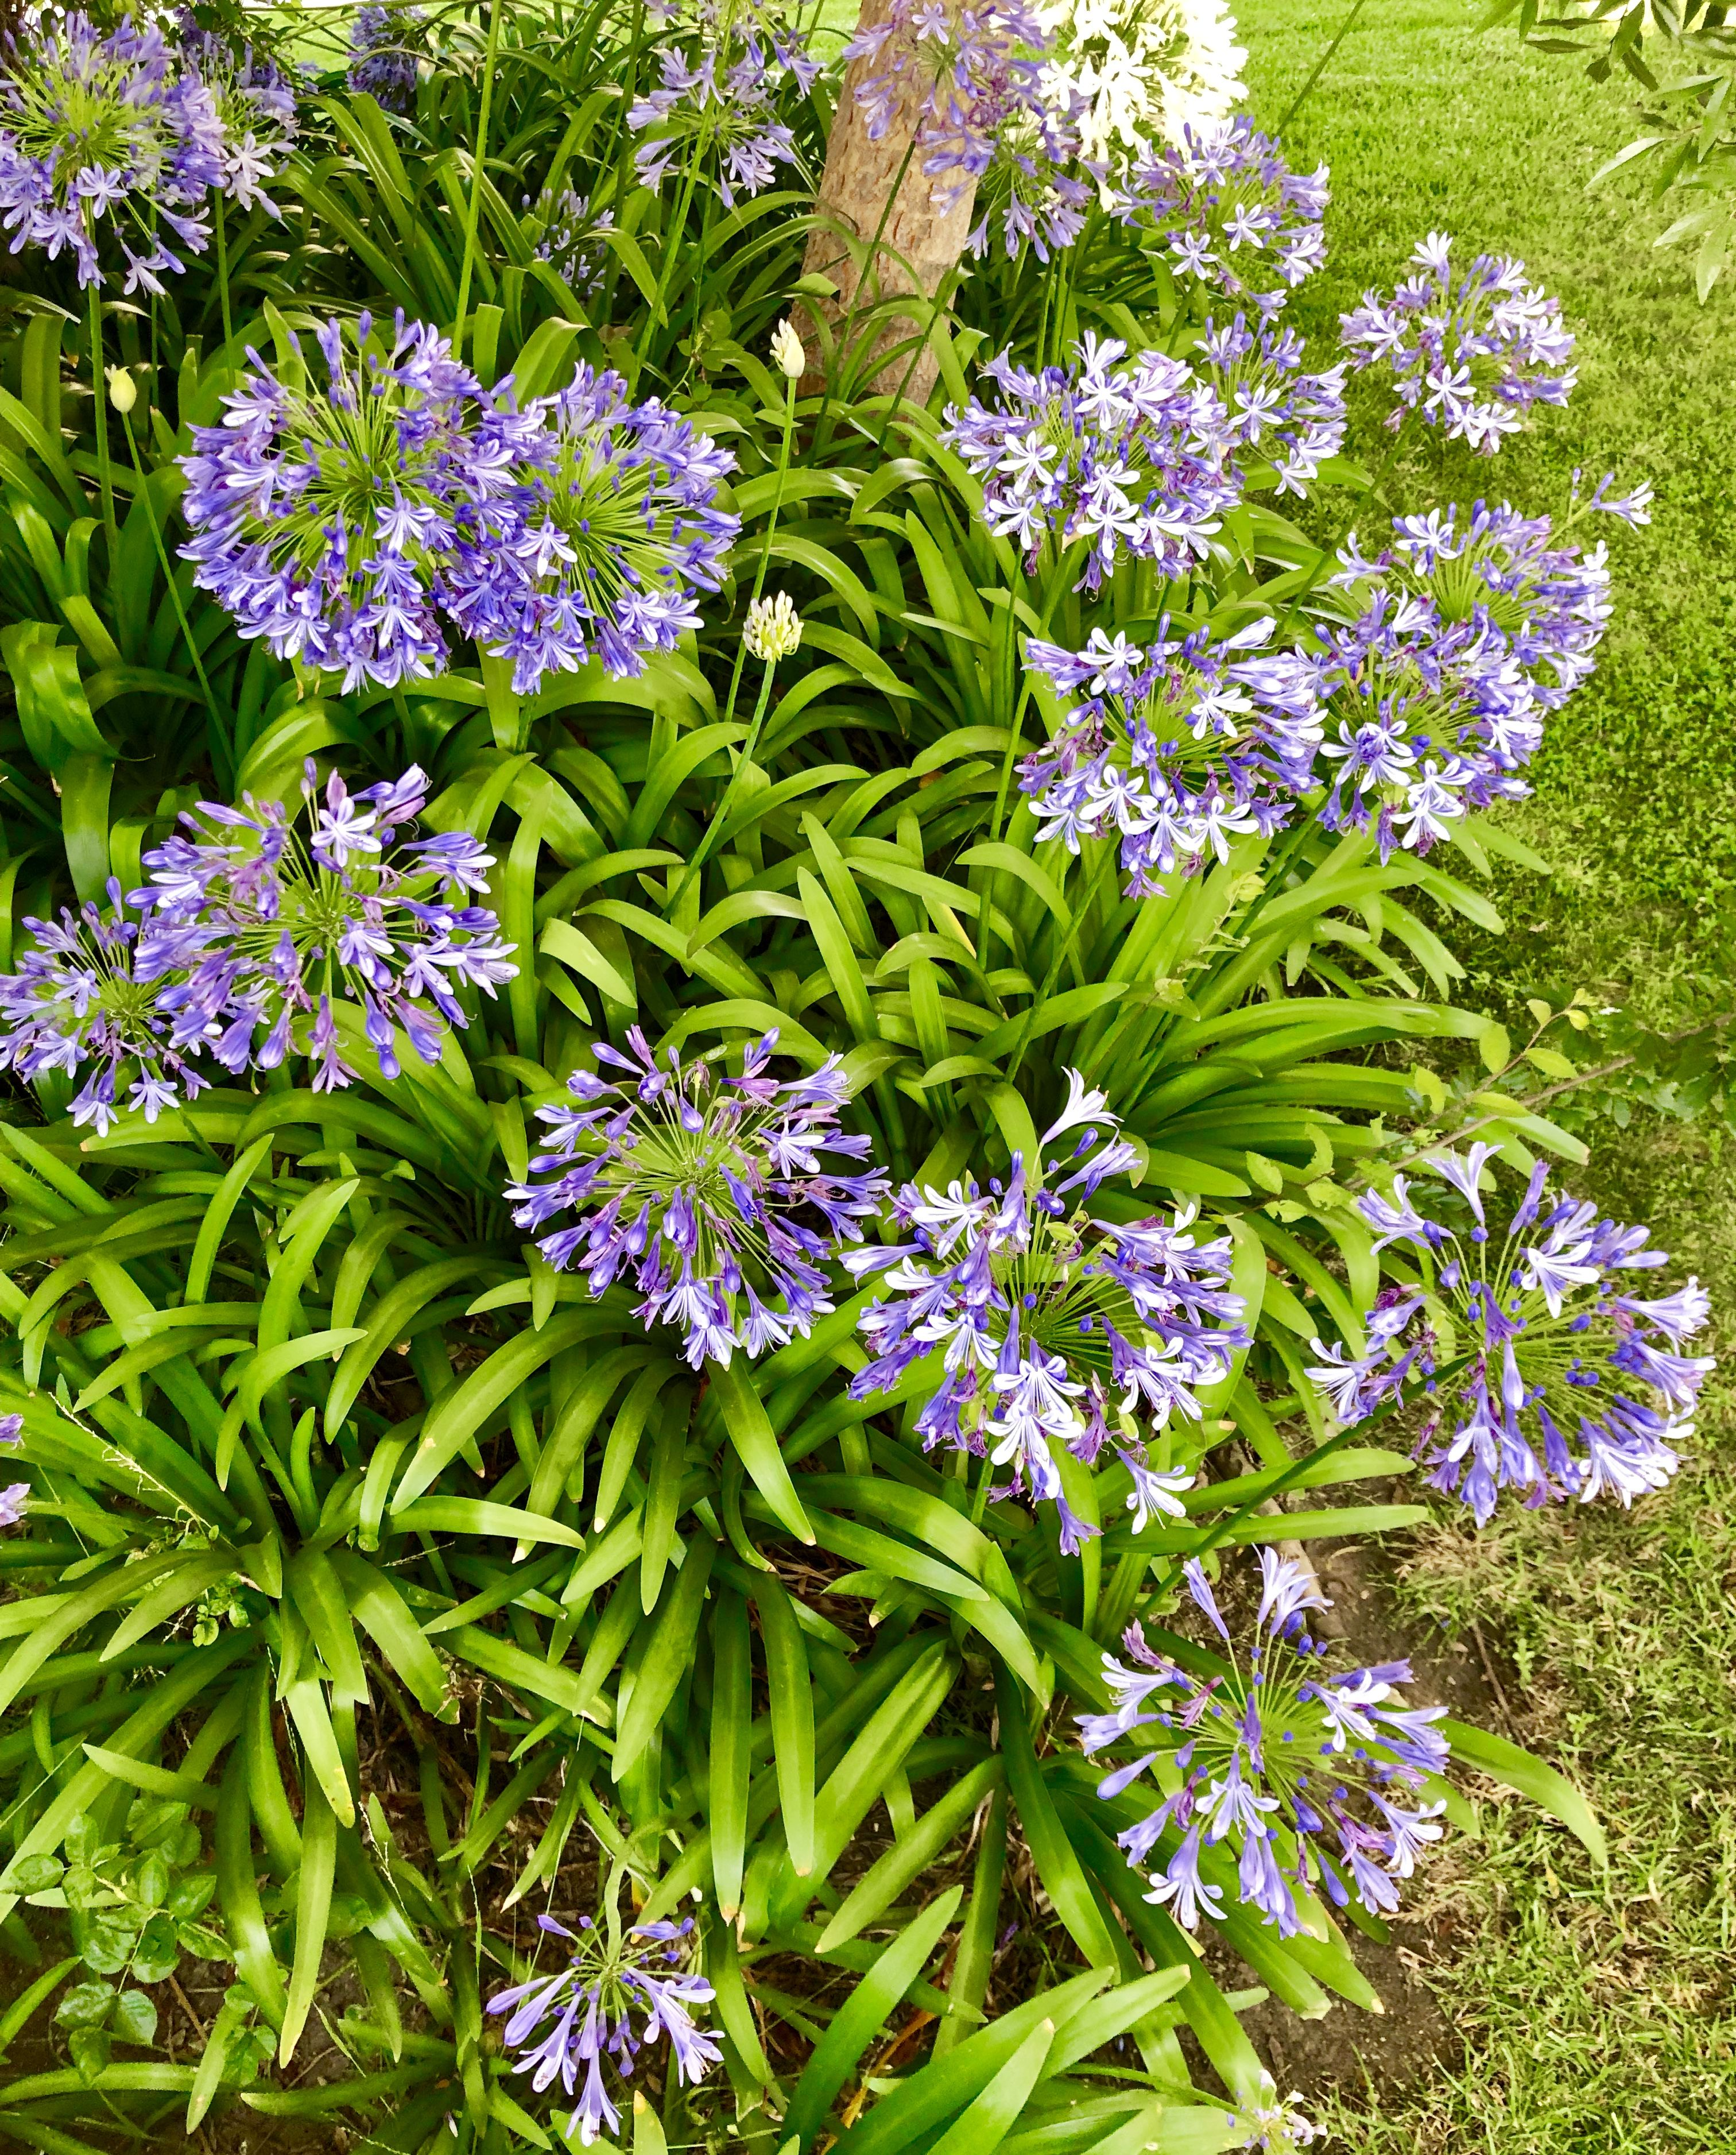 Agapanthus Flowers Or Lily Of The Nile 꽃 사진